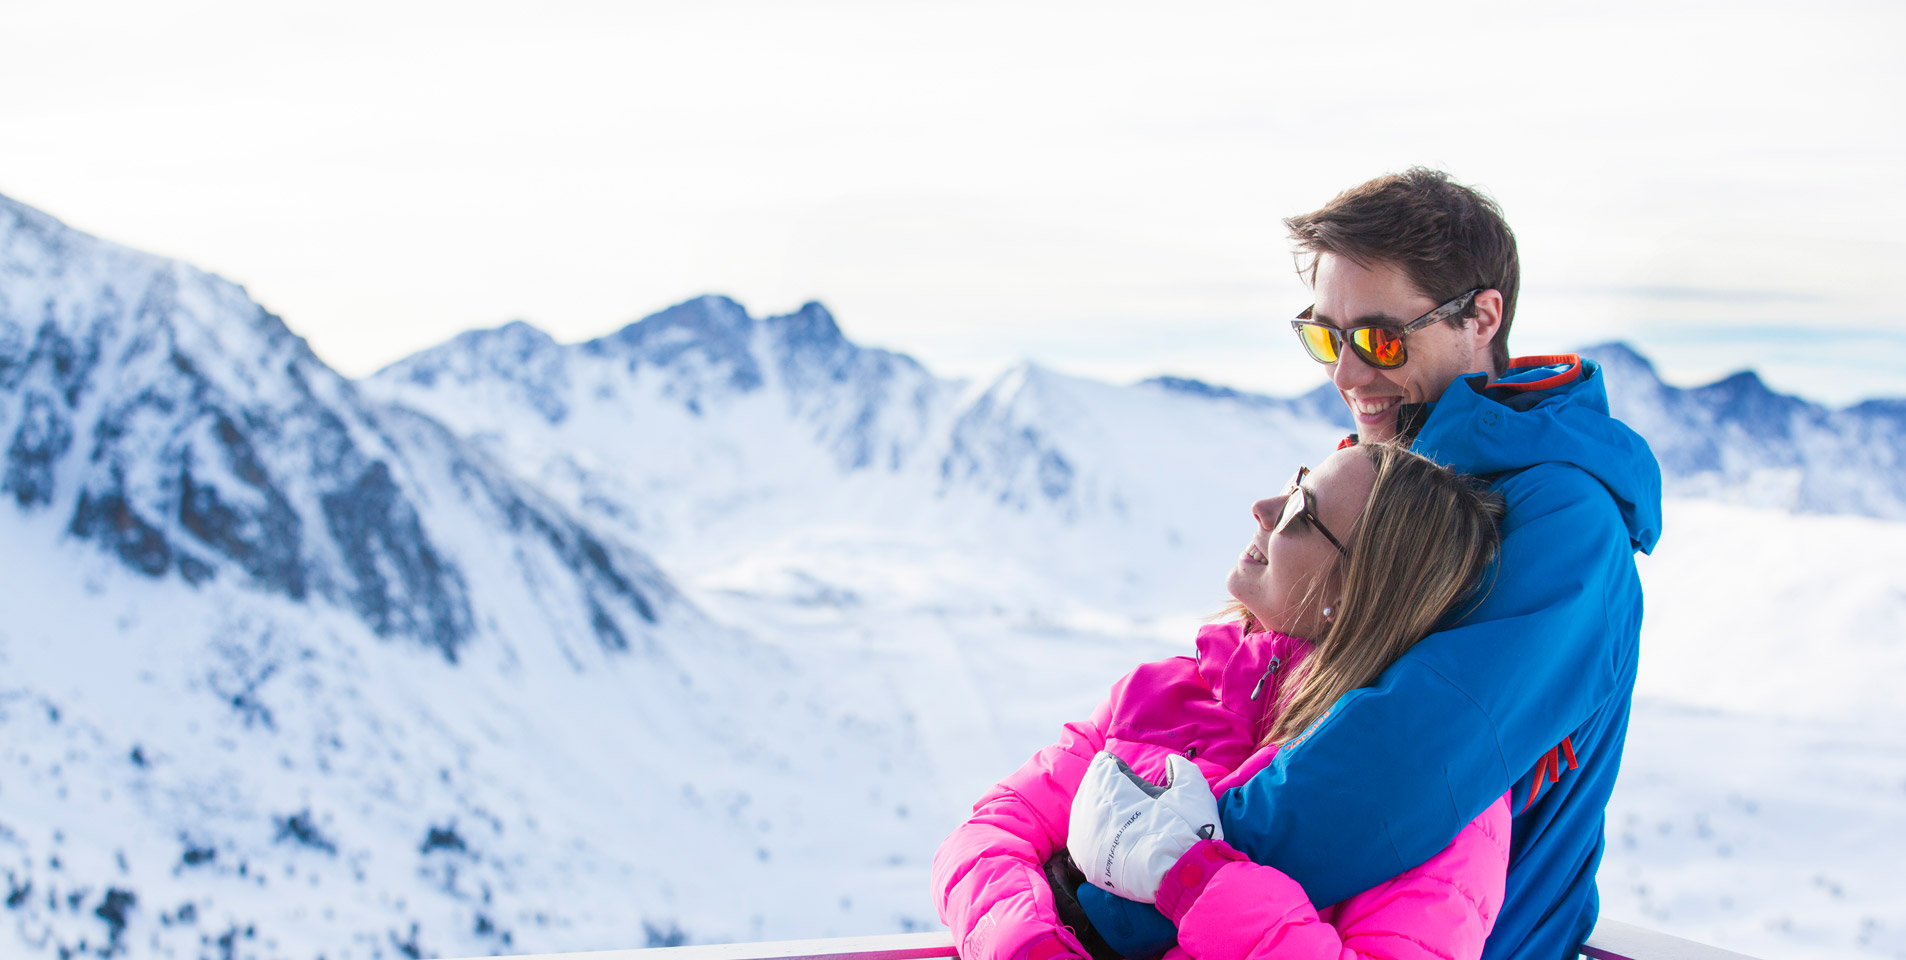 FALL IN LOVE IN THE WHITE SNOW OF ANDORRA